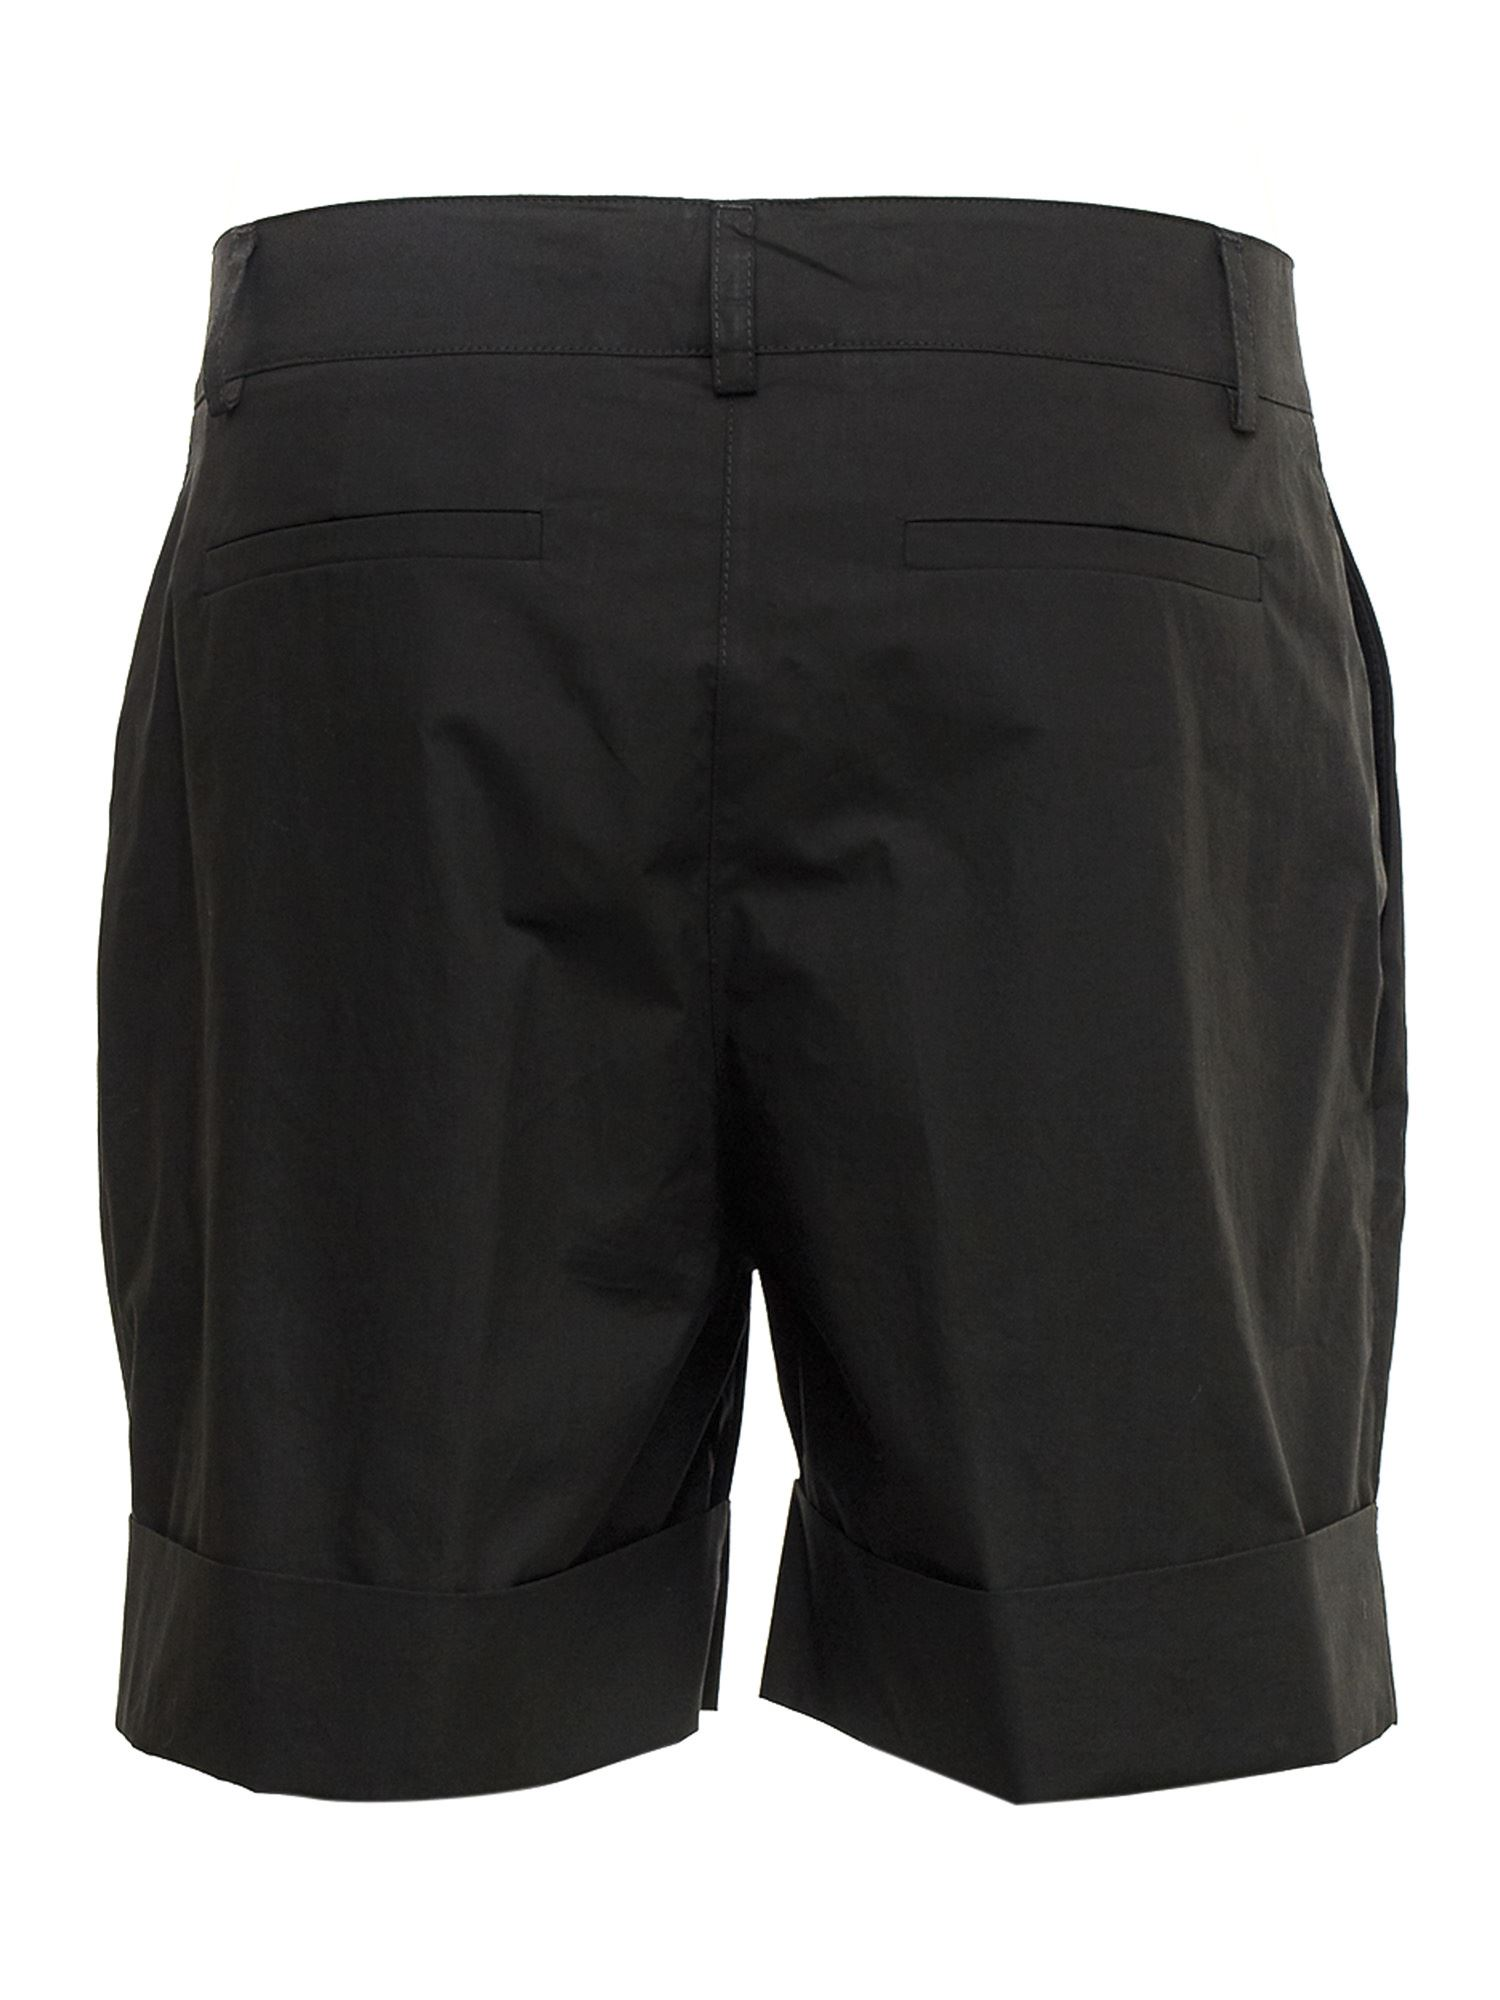 P.A.R.O.S.H. Cottons COTTON POPLIN SHORTS IN BLACK